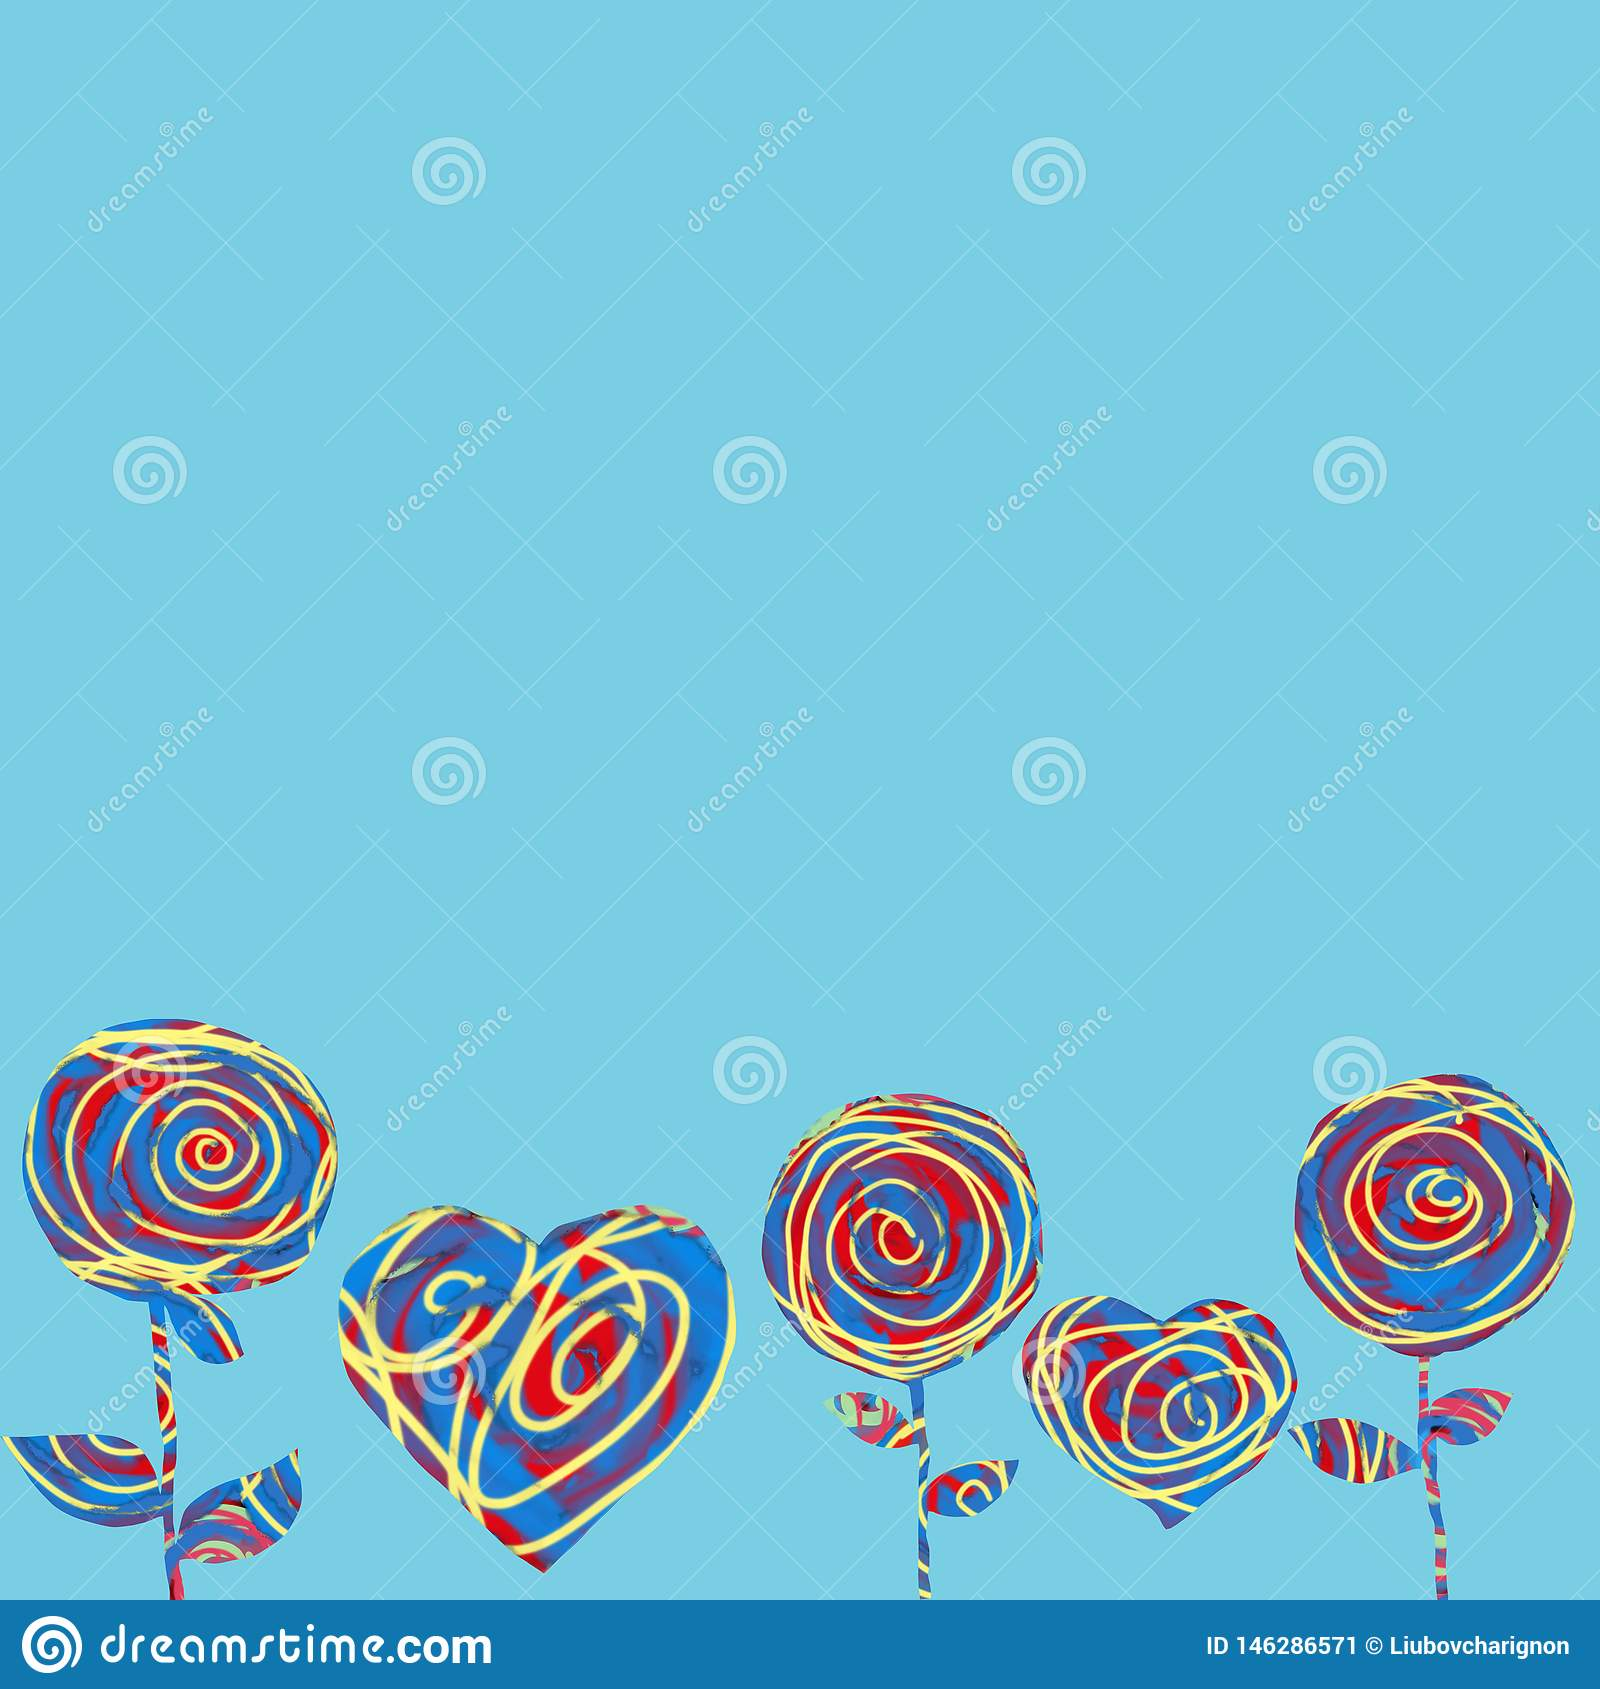 Collage hearts and flowers on a blue background. Abstract Greeting card for Valentine's Day.